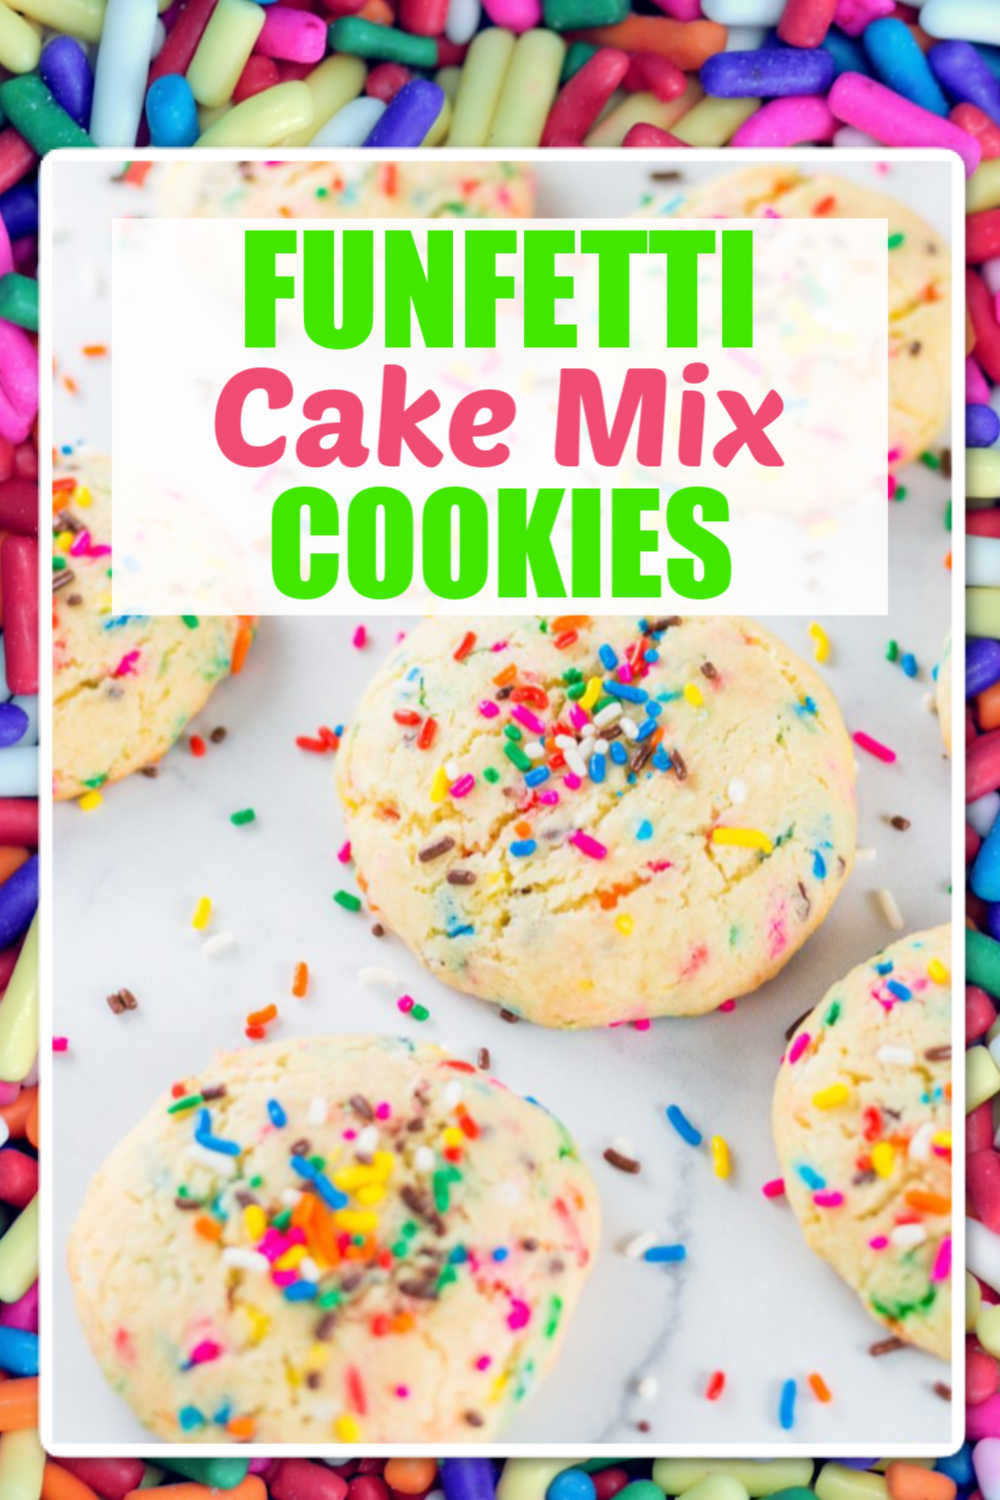 How to Make Funfetti Cake Mix Cookies in 20 Minutes